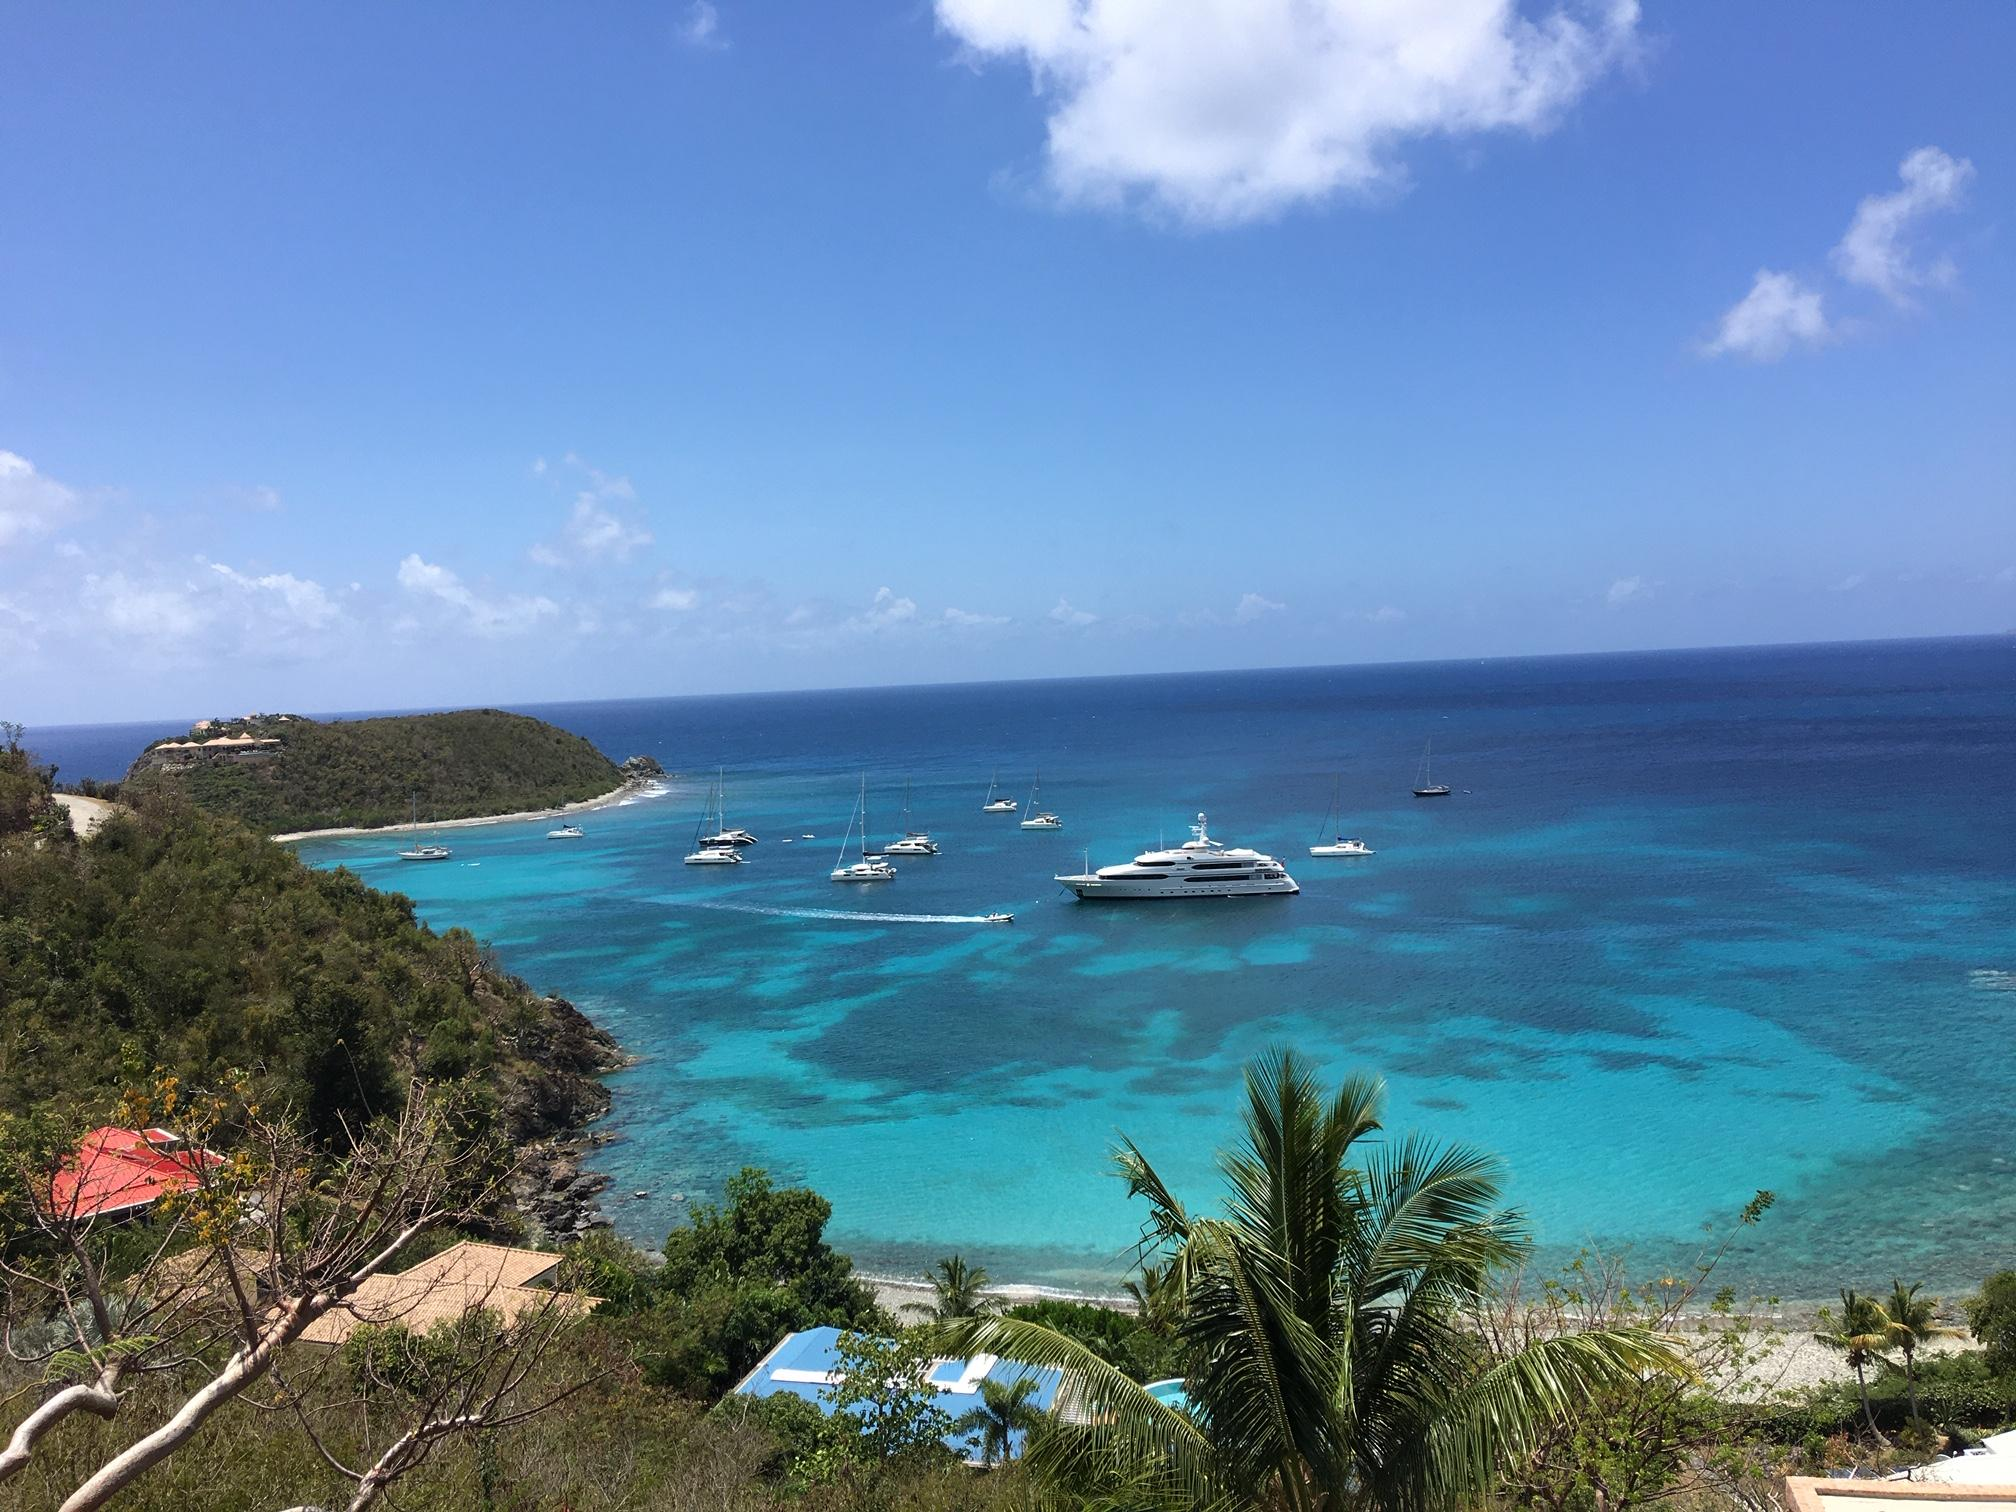 RE/MAX real estate, US Virgin Islands, Rendezvous & Ditleff, Price Reduced  Land  Rendezvous  Ditleff